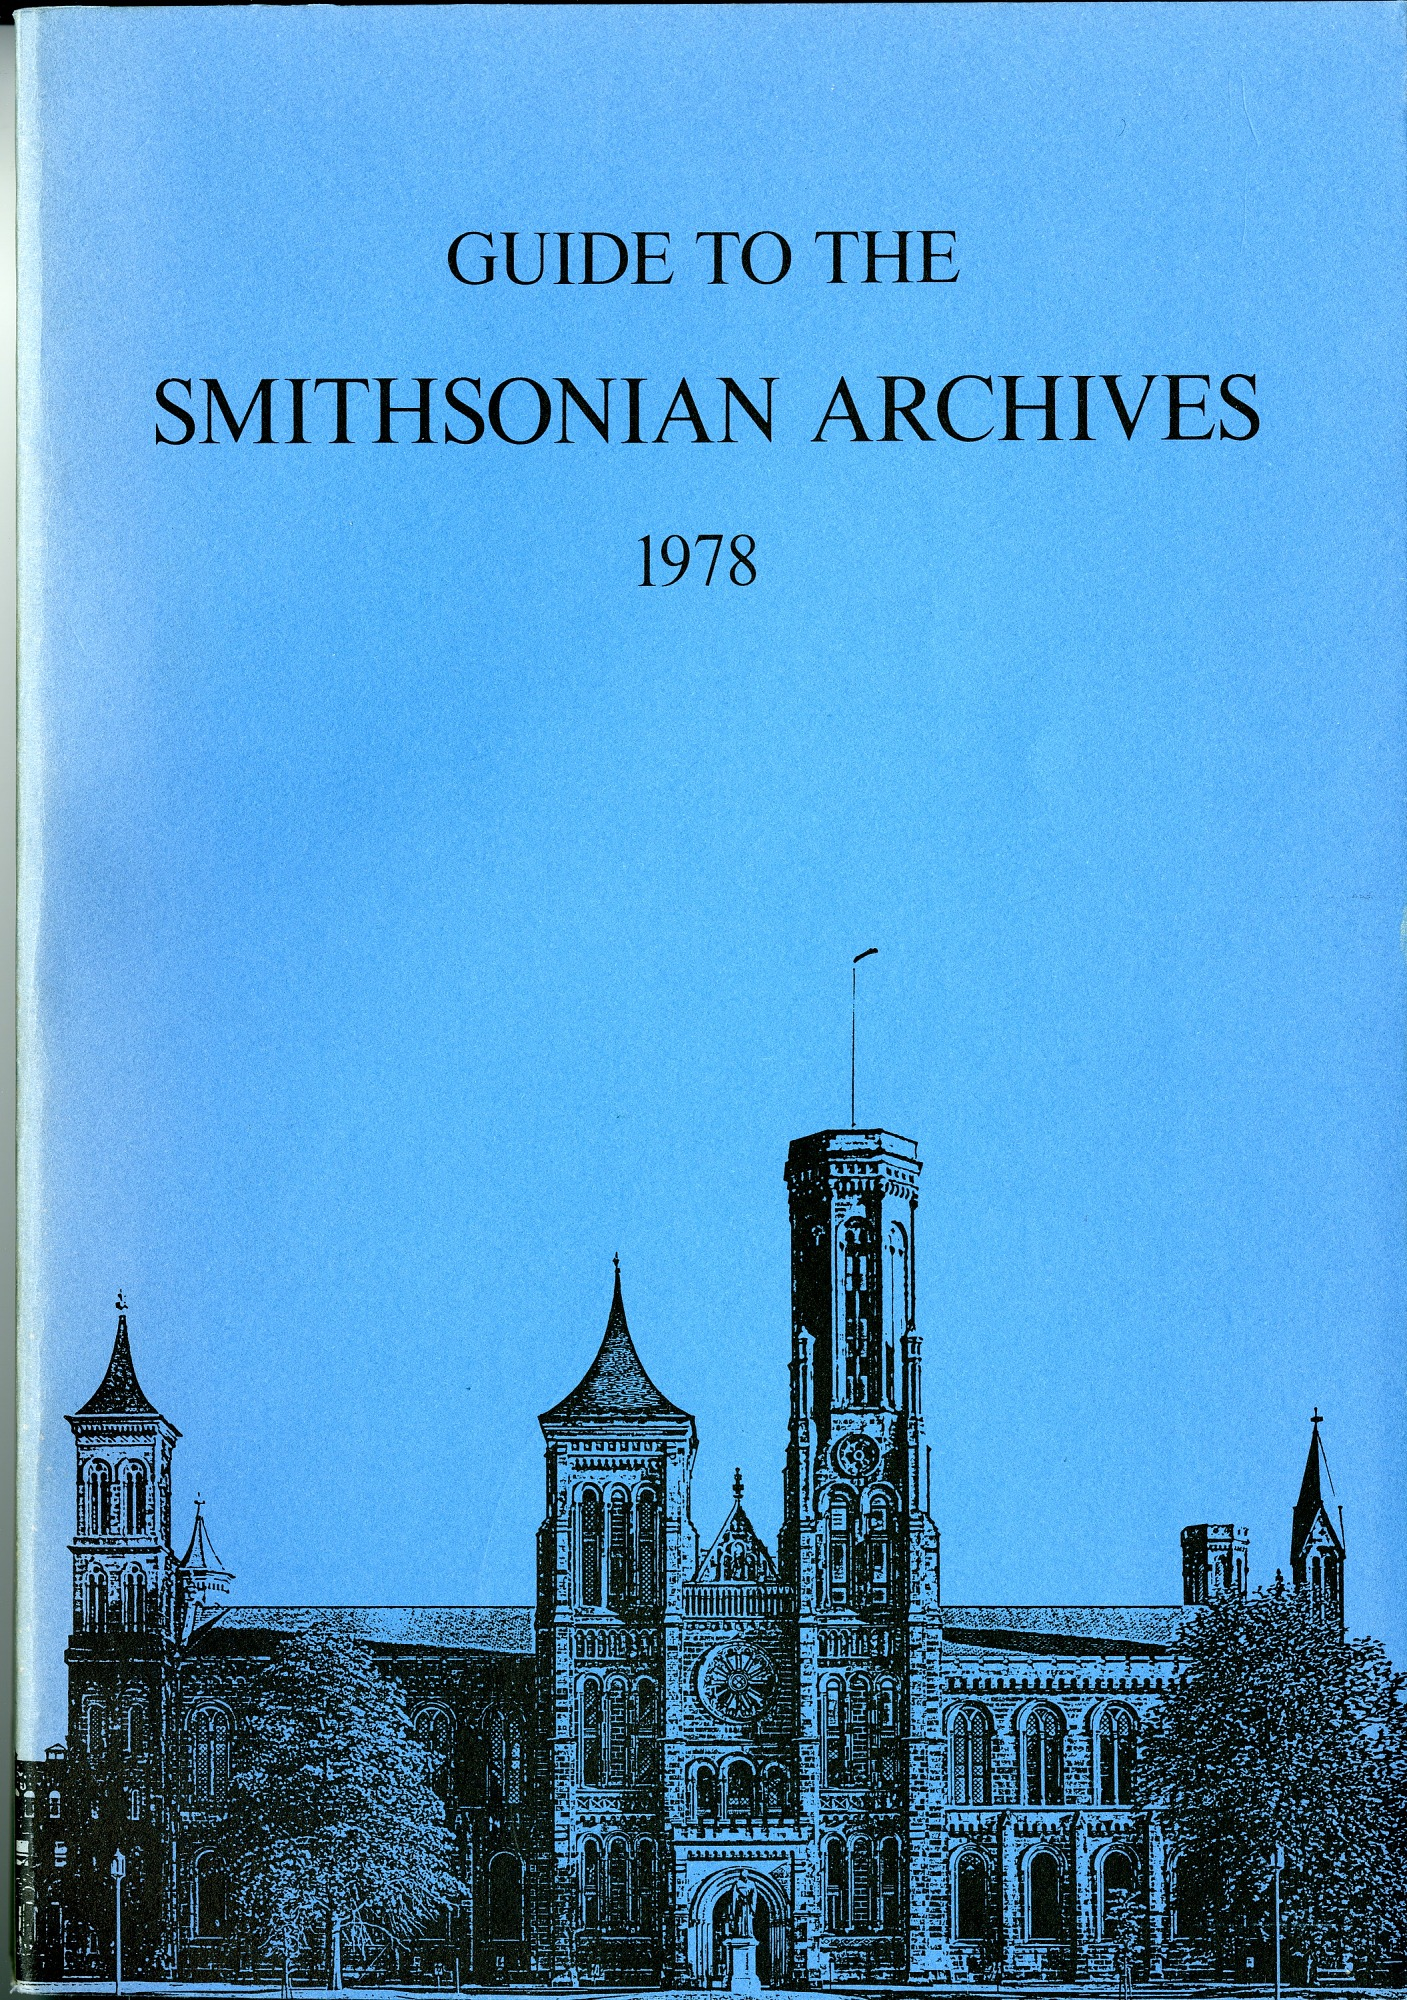 Guide to the Smithsonian Archives 1978